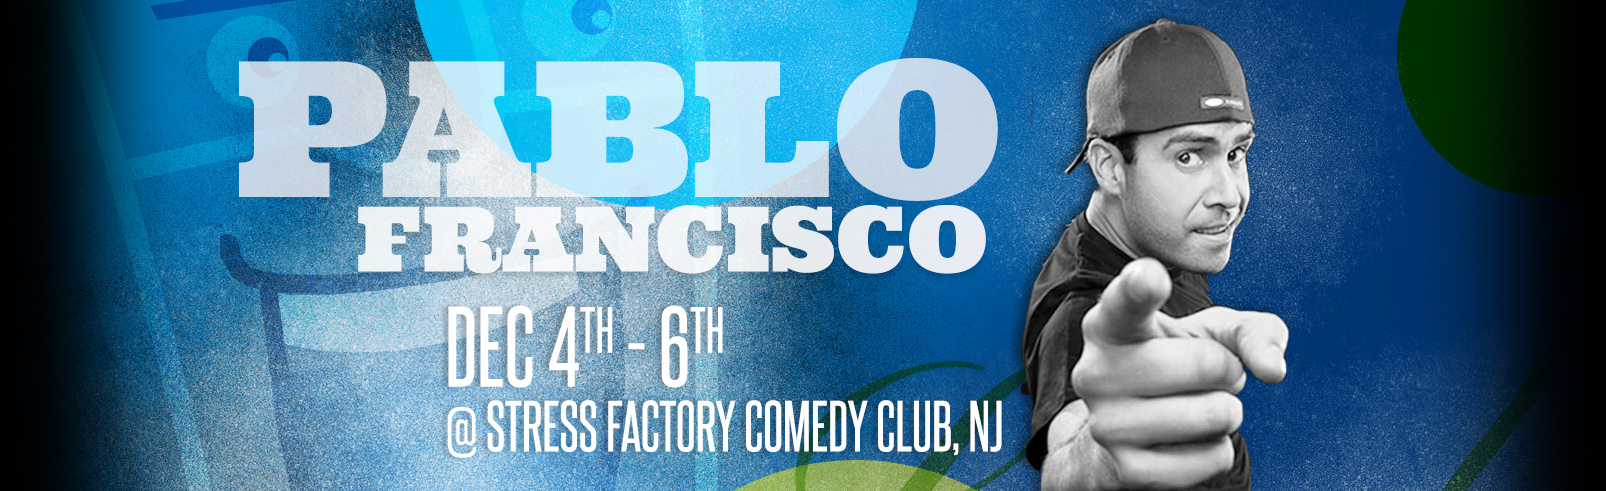 Pablo Francisco @ Stress Factory Comedy Club